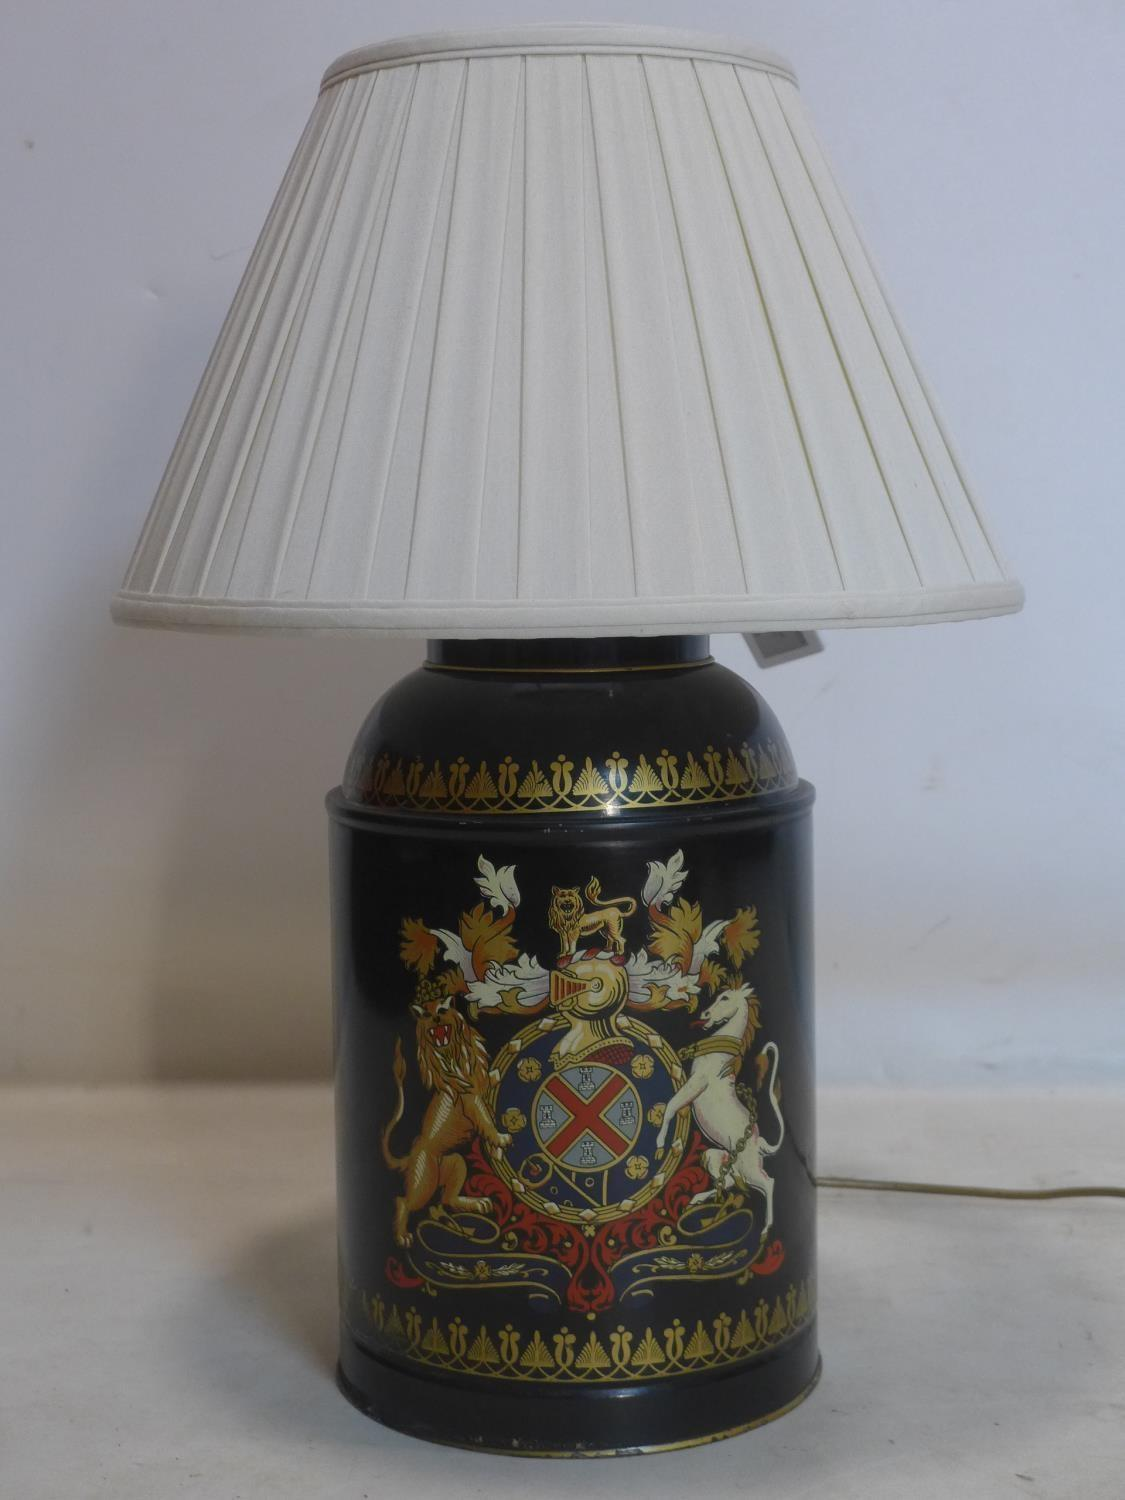 Lot 500 - A 19th tole ware tea caddy hand painted with armorial crest, converted to a lamp, H.36cm